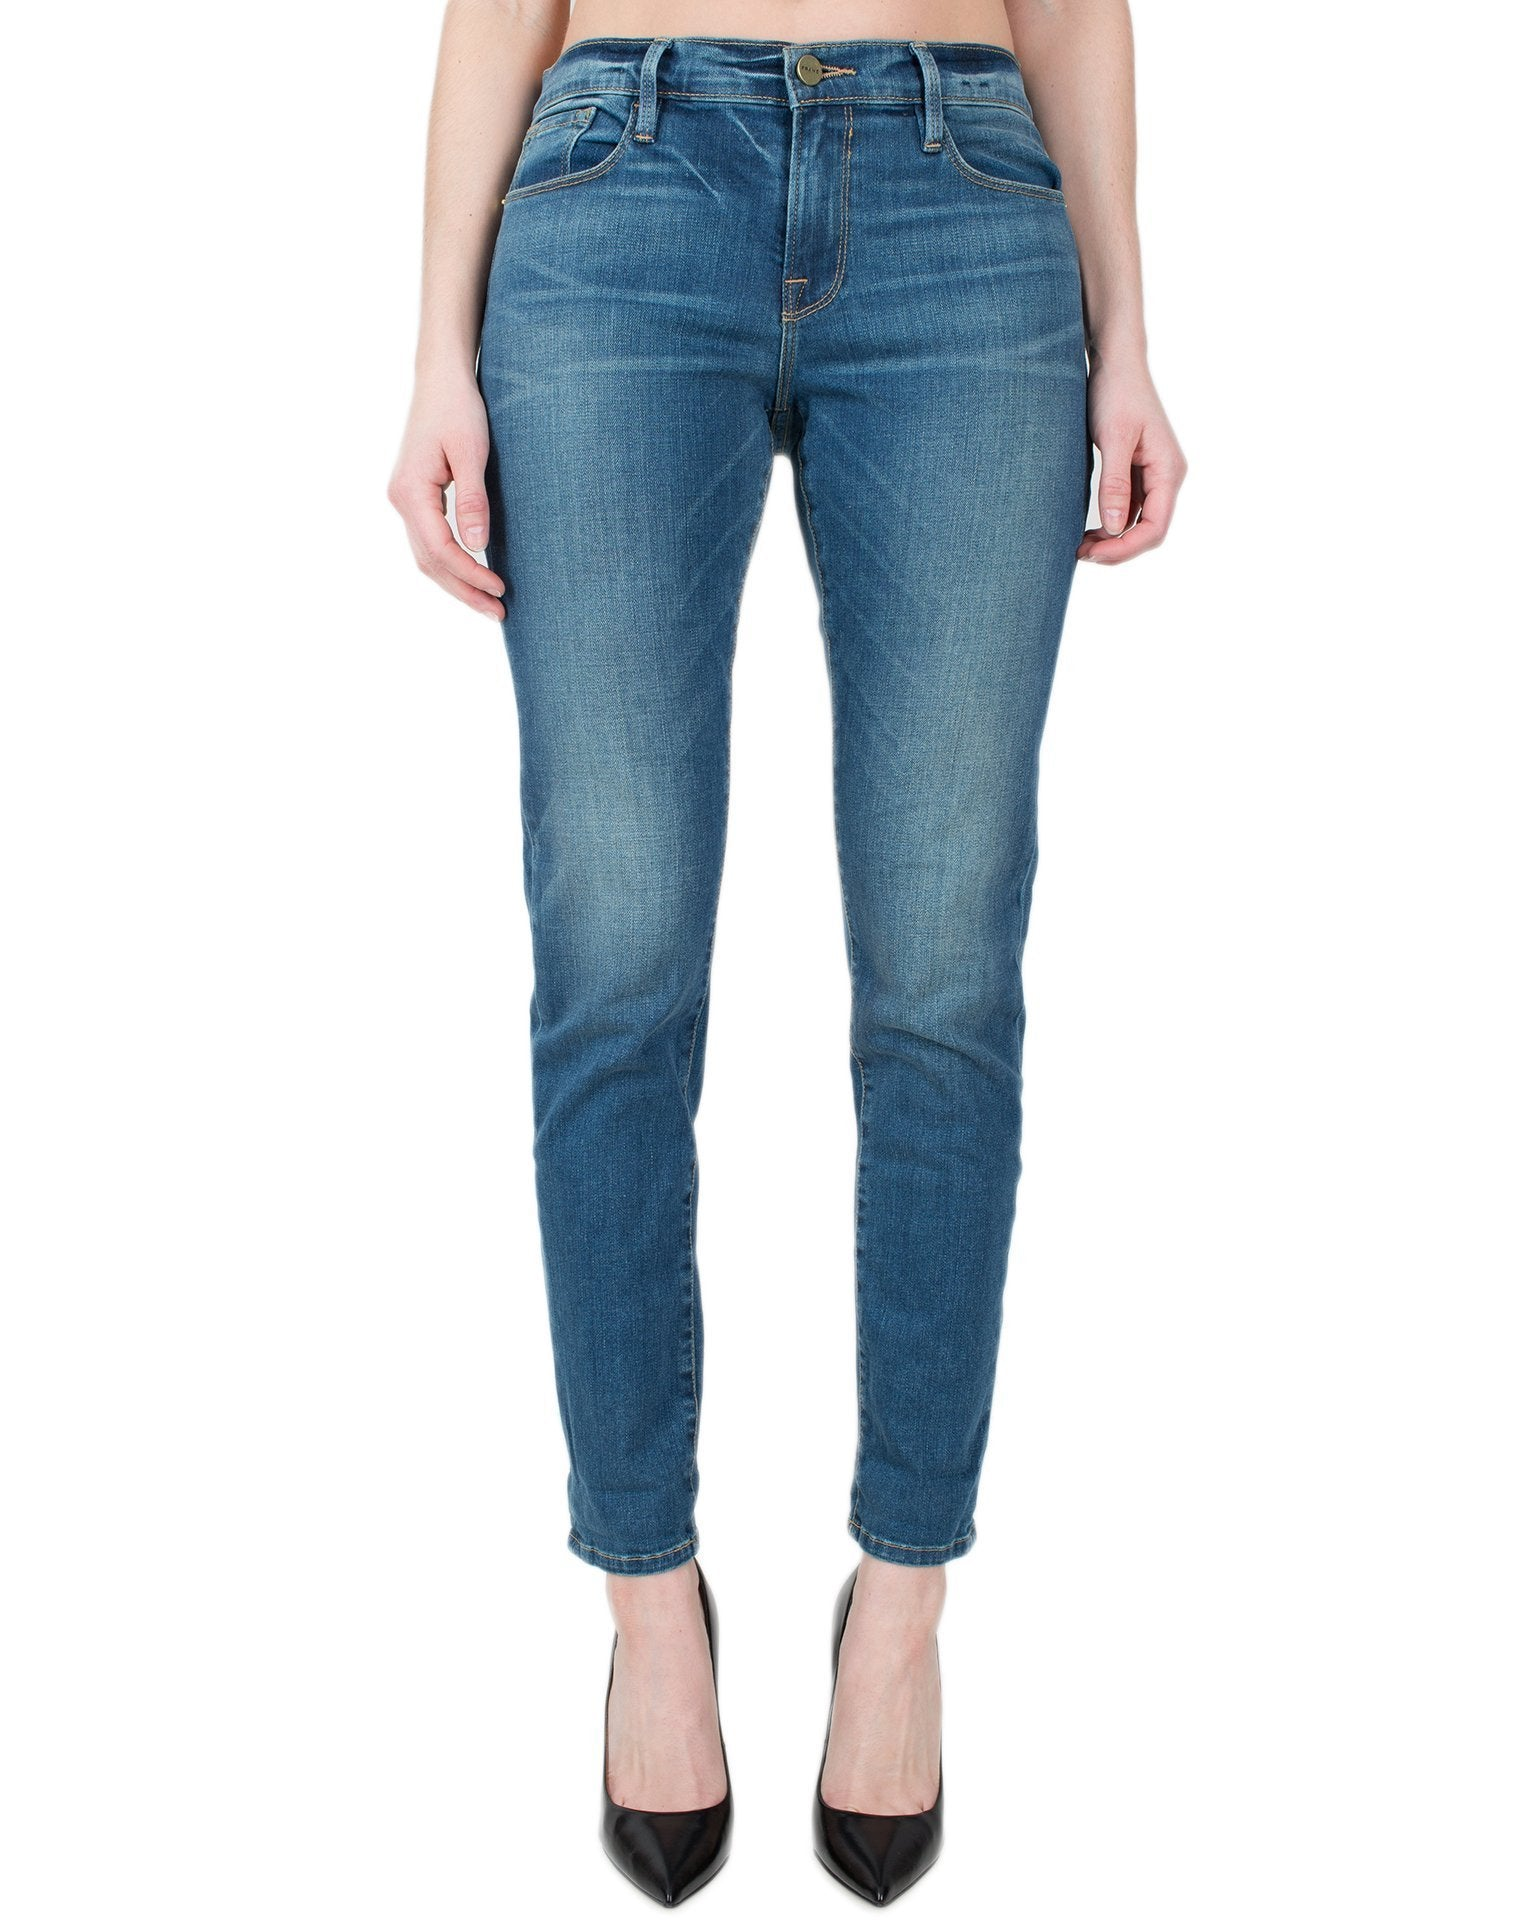 Frame Denim Berkley Square / 25 Le Garcon- Berkley Square